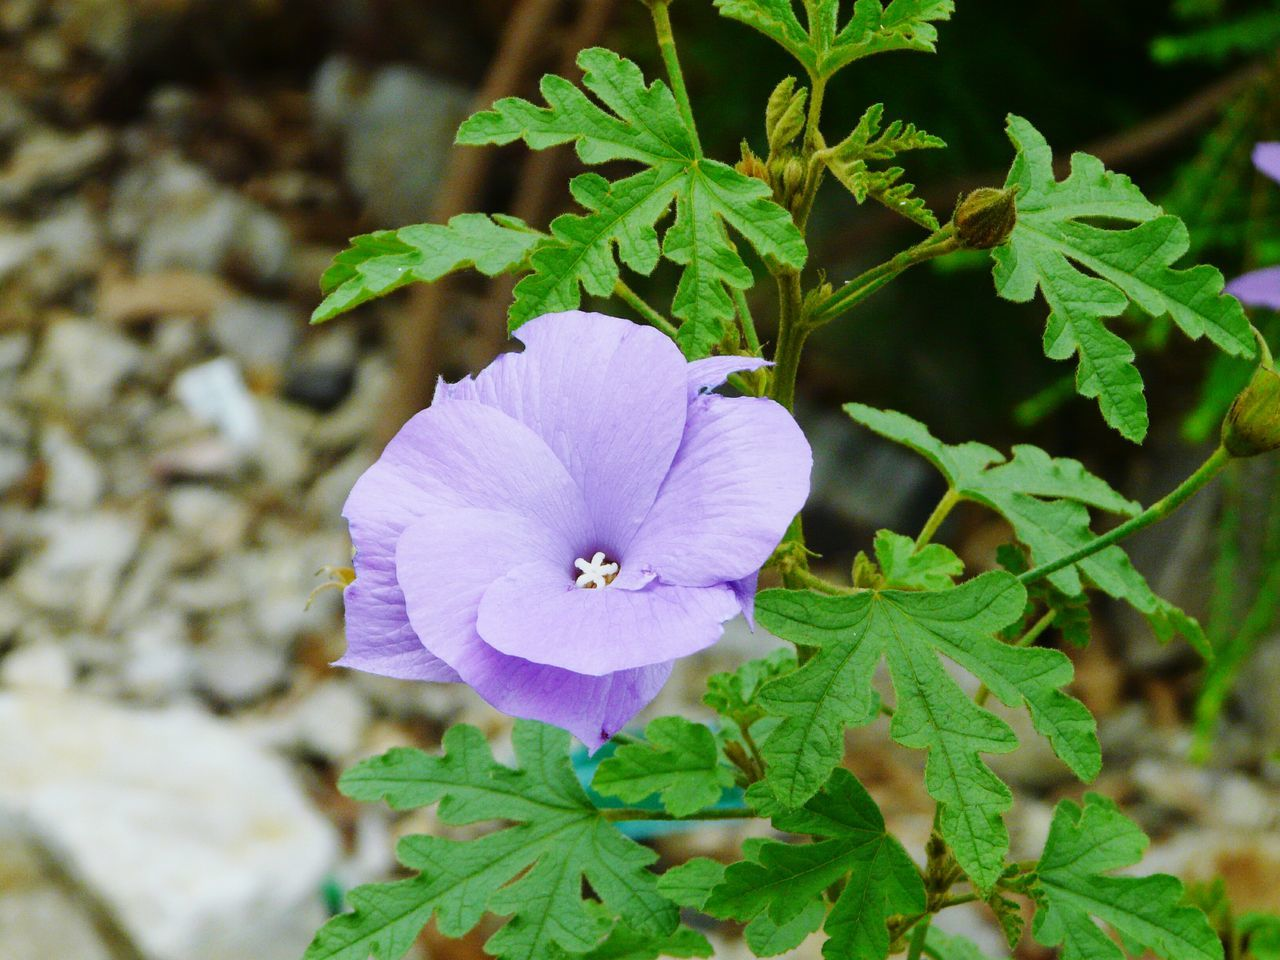 flower, plant, nature, beauty in nature, fragility, petal, growth, freshness, flower head, no people, leaf, close-up, blooming, green color, day, outdoors, petunia